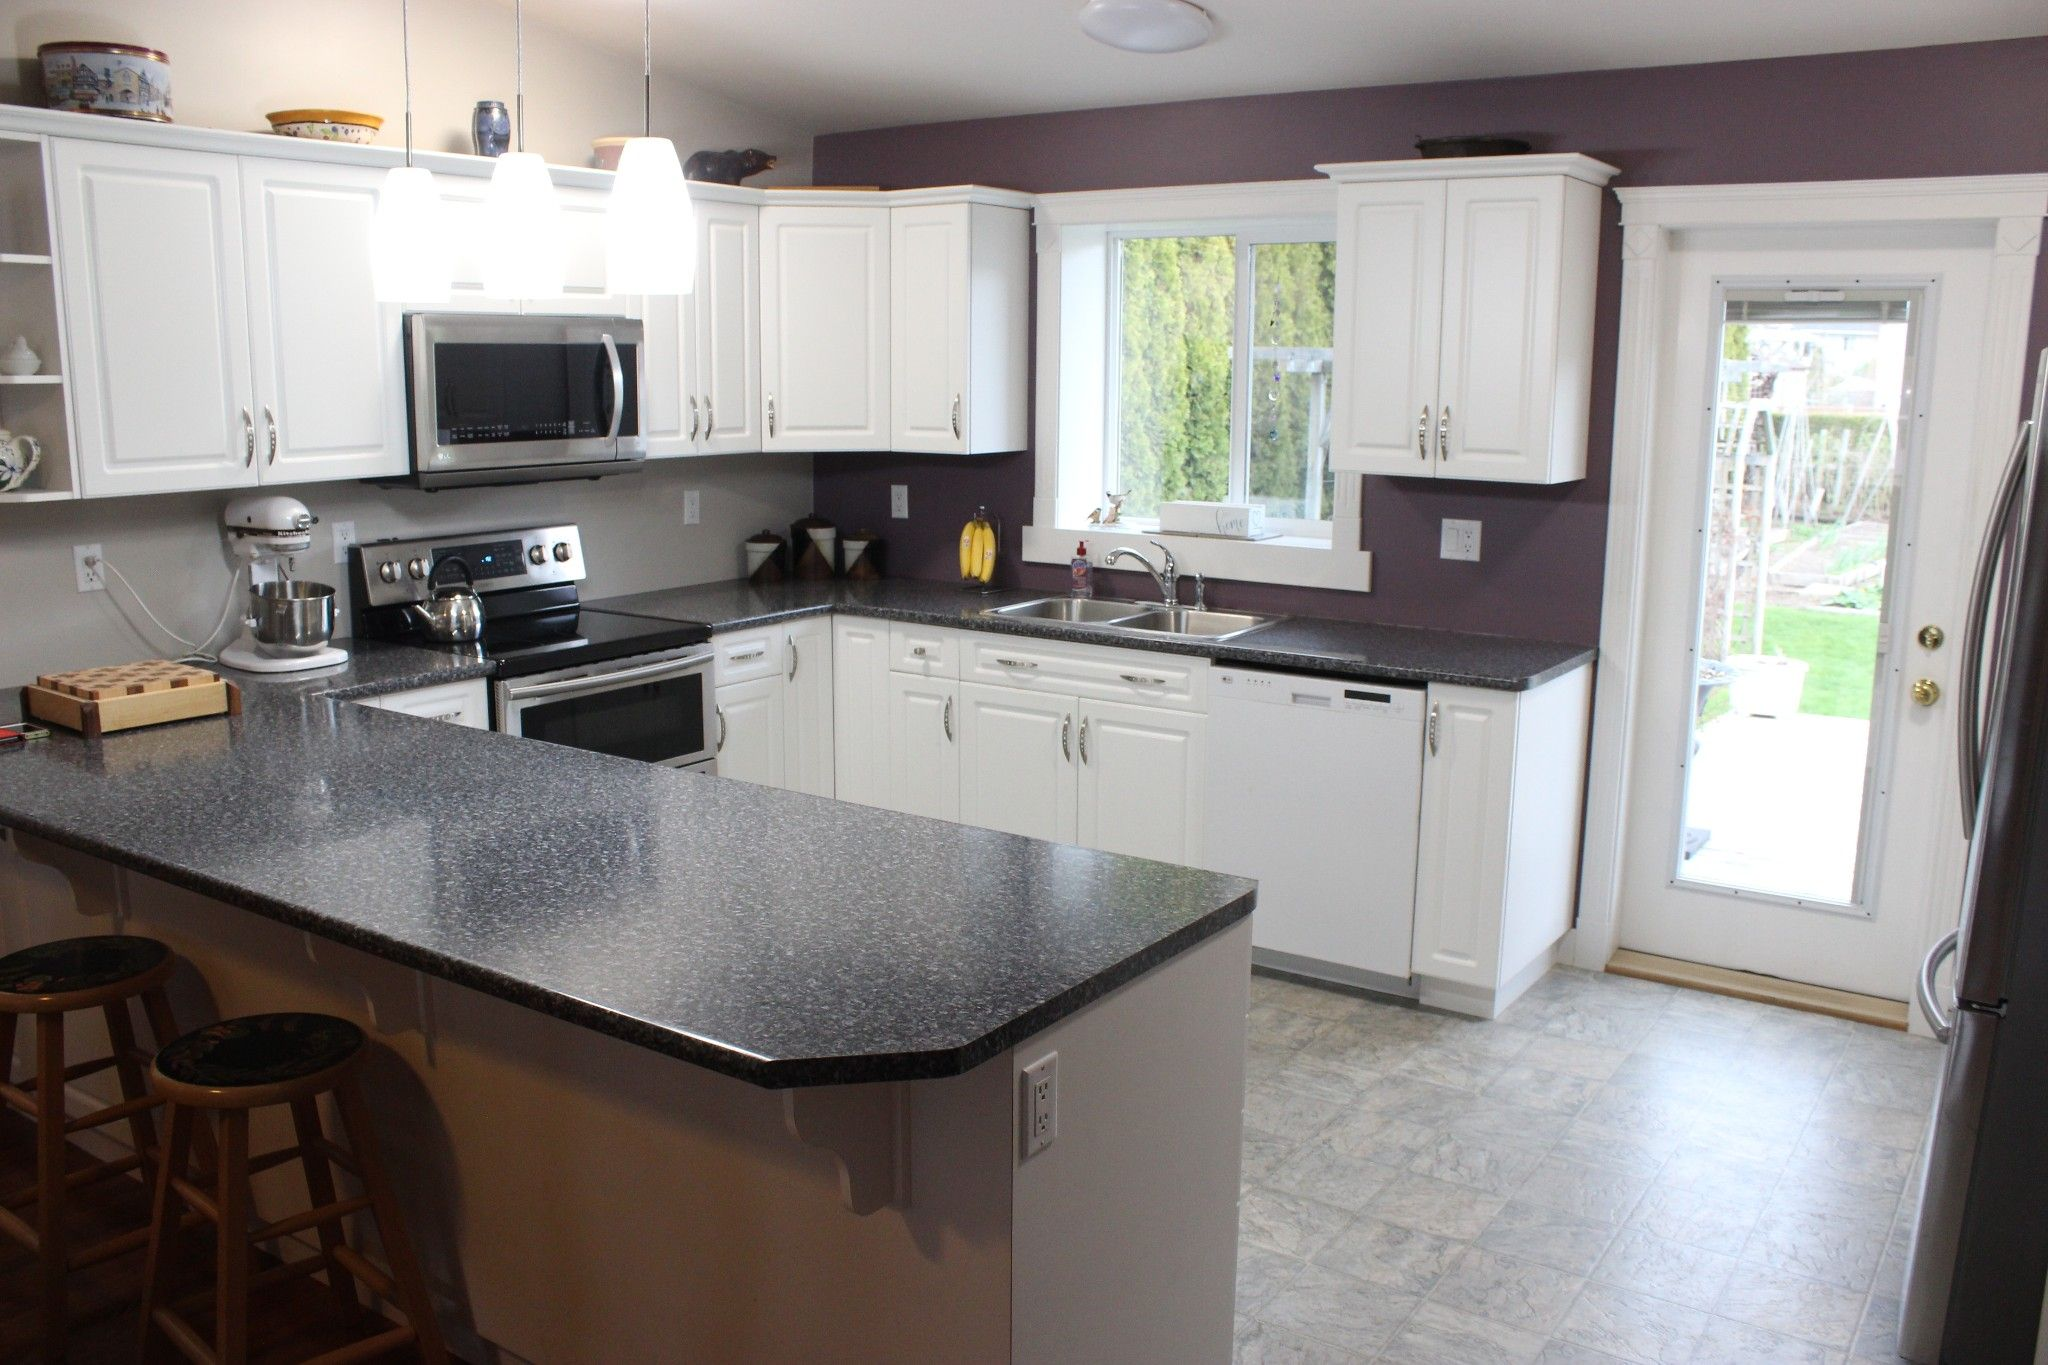 Photo 6: Photos: 351 Juniper Street in Chase: House for sale : MLS®# 151124